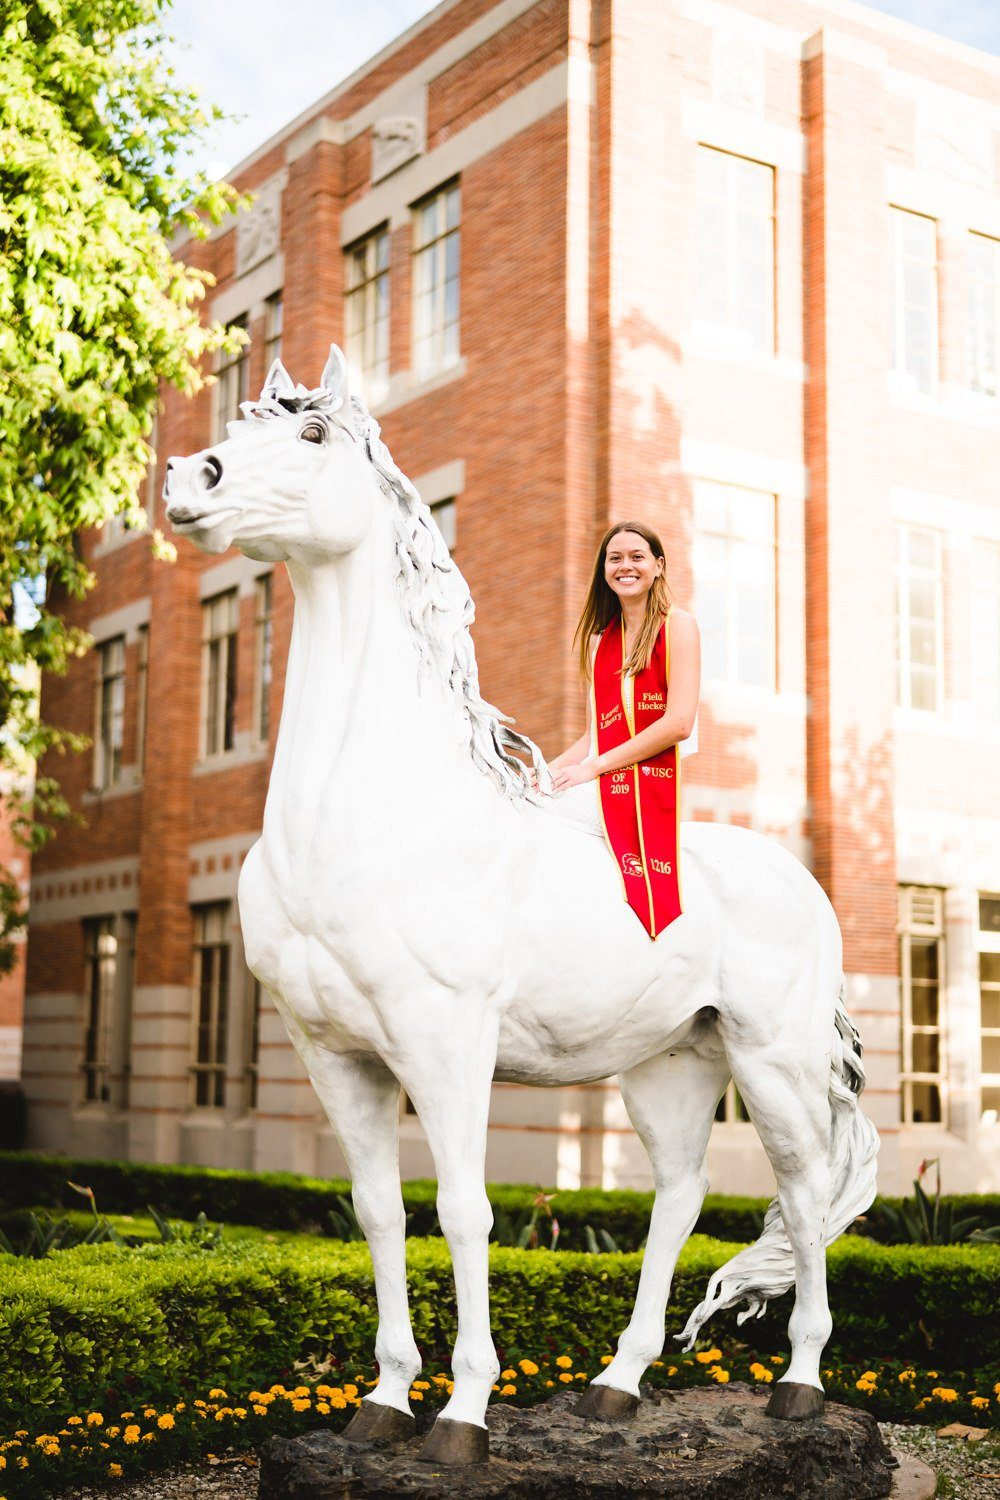 graduating senior sitting on traveler the horse statue usc mascot | usc graduation photographer los angeles